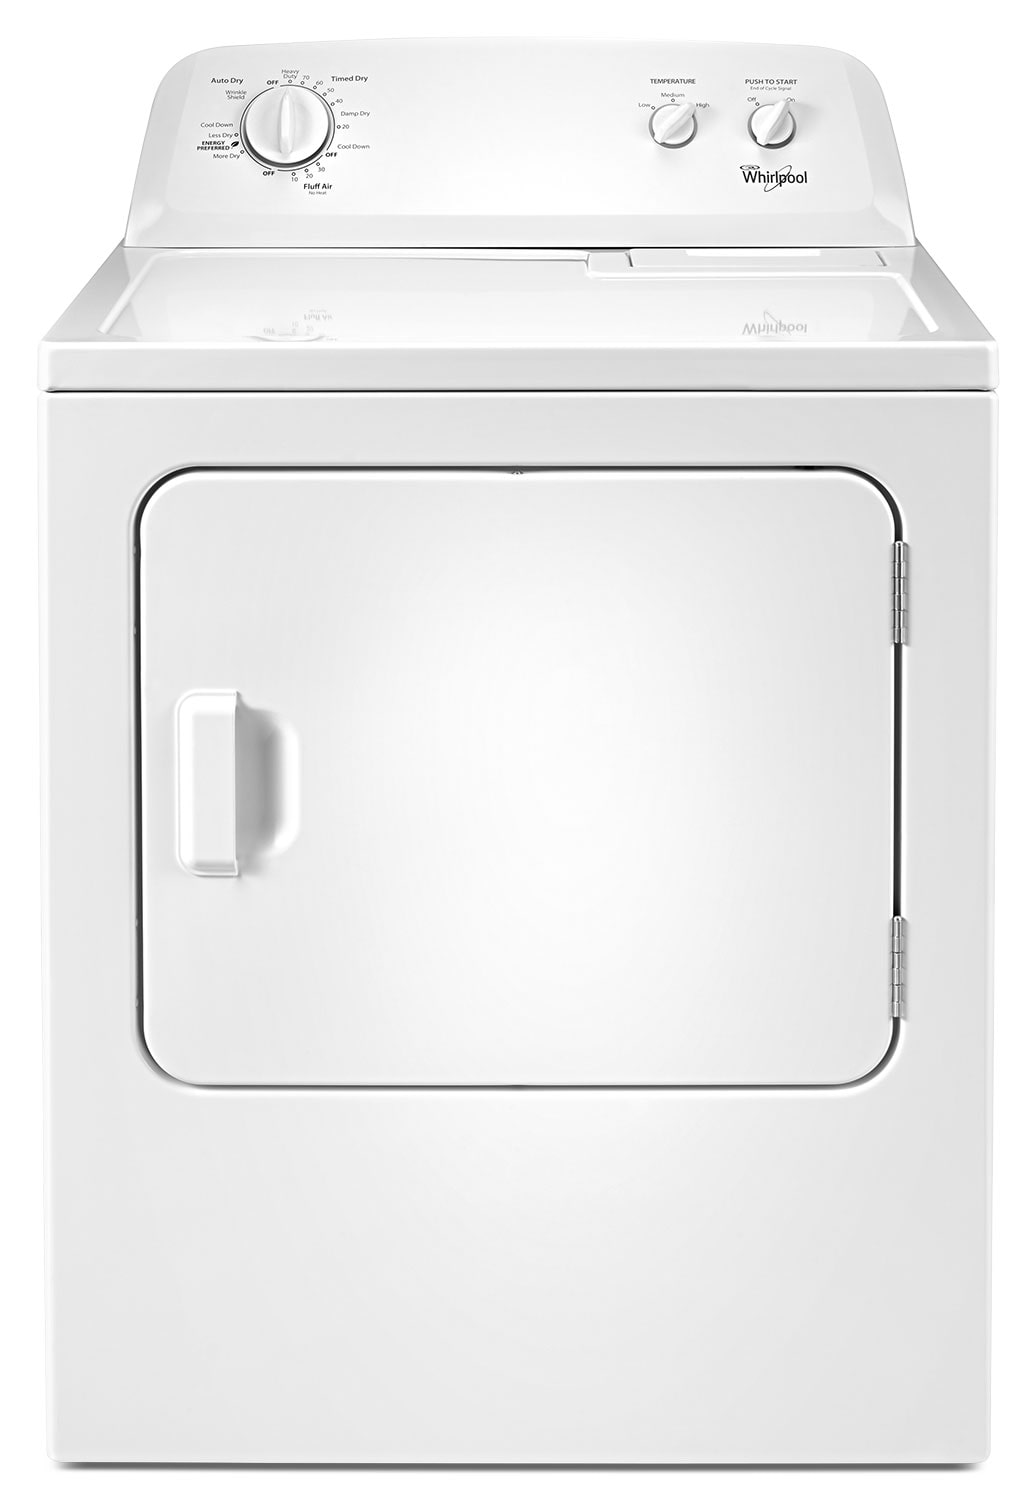 Washers and Dryers - Whirlpool White Electric Dryer (7.0 Cu. Ft.) - YWED4616FW